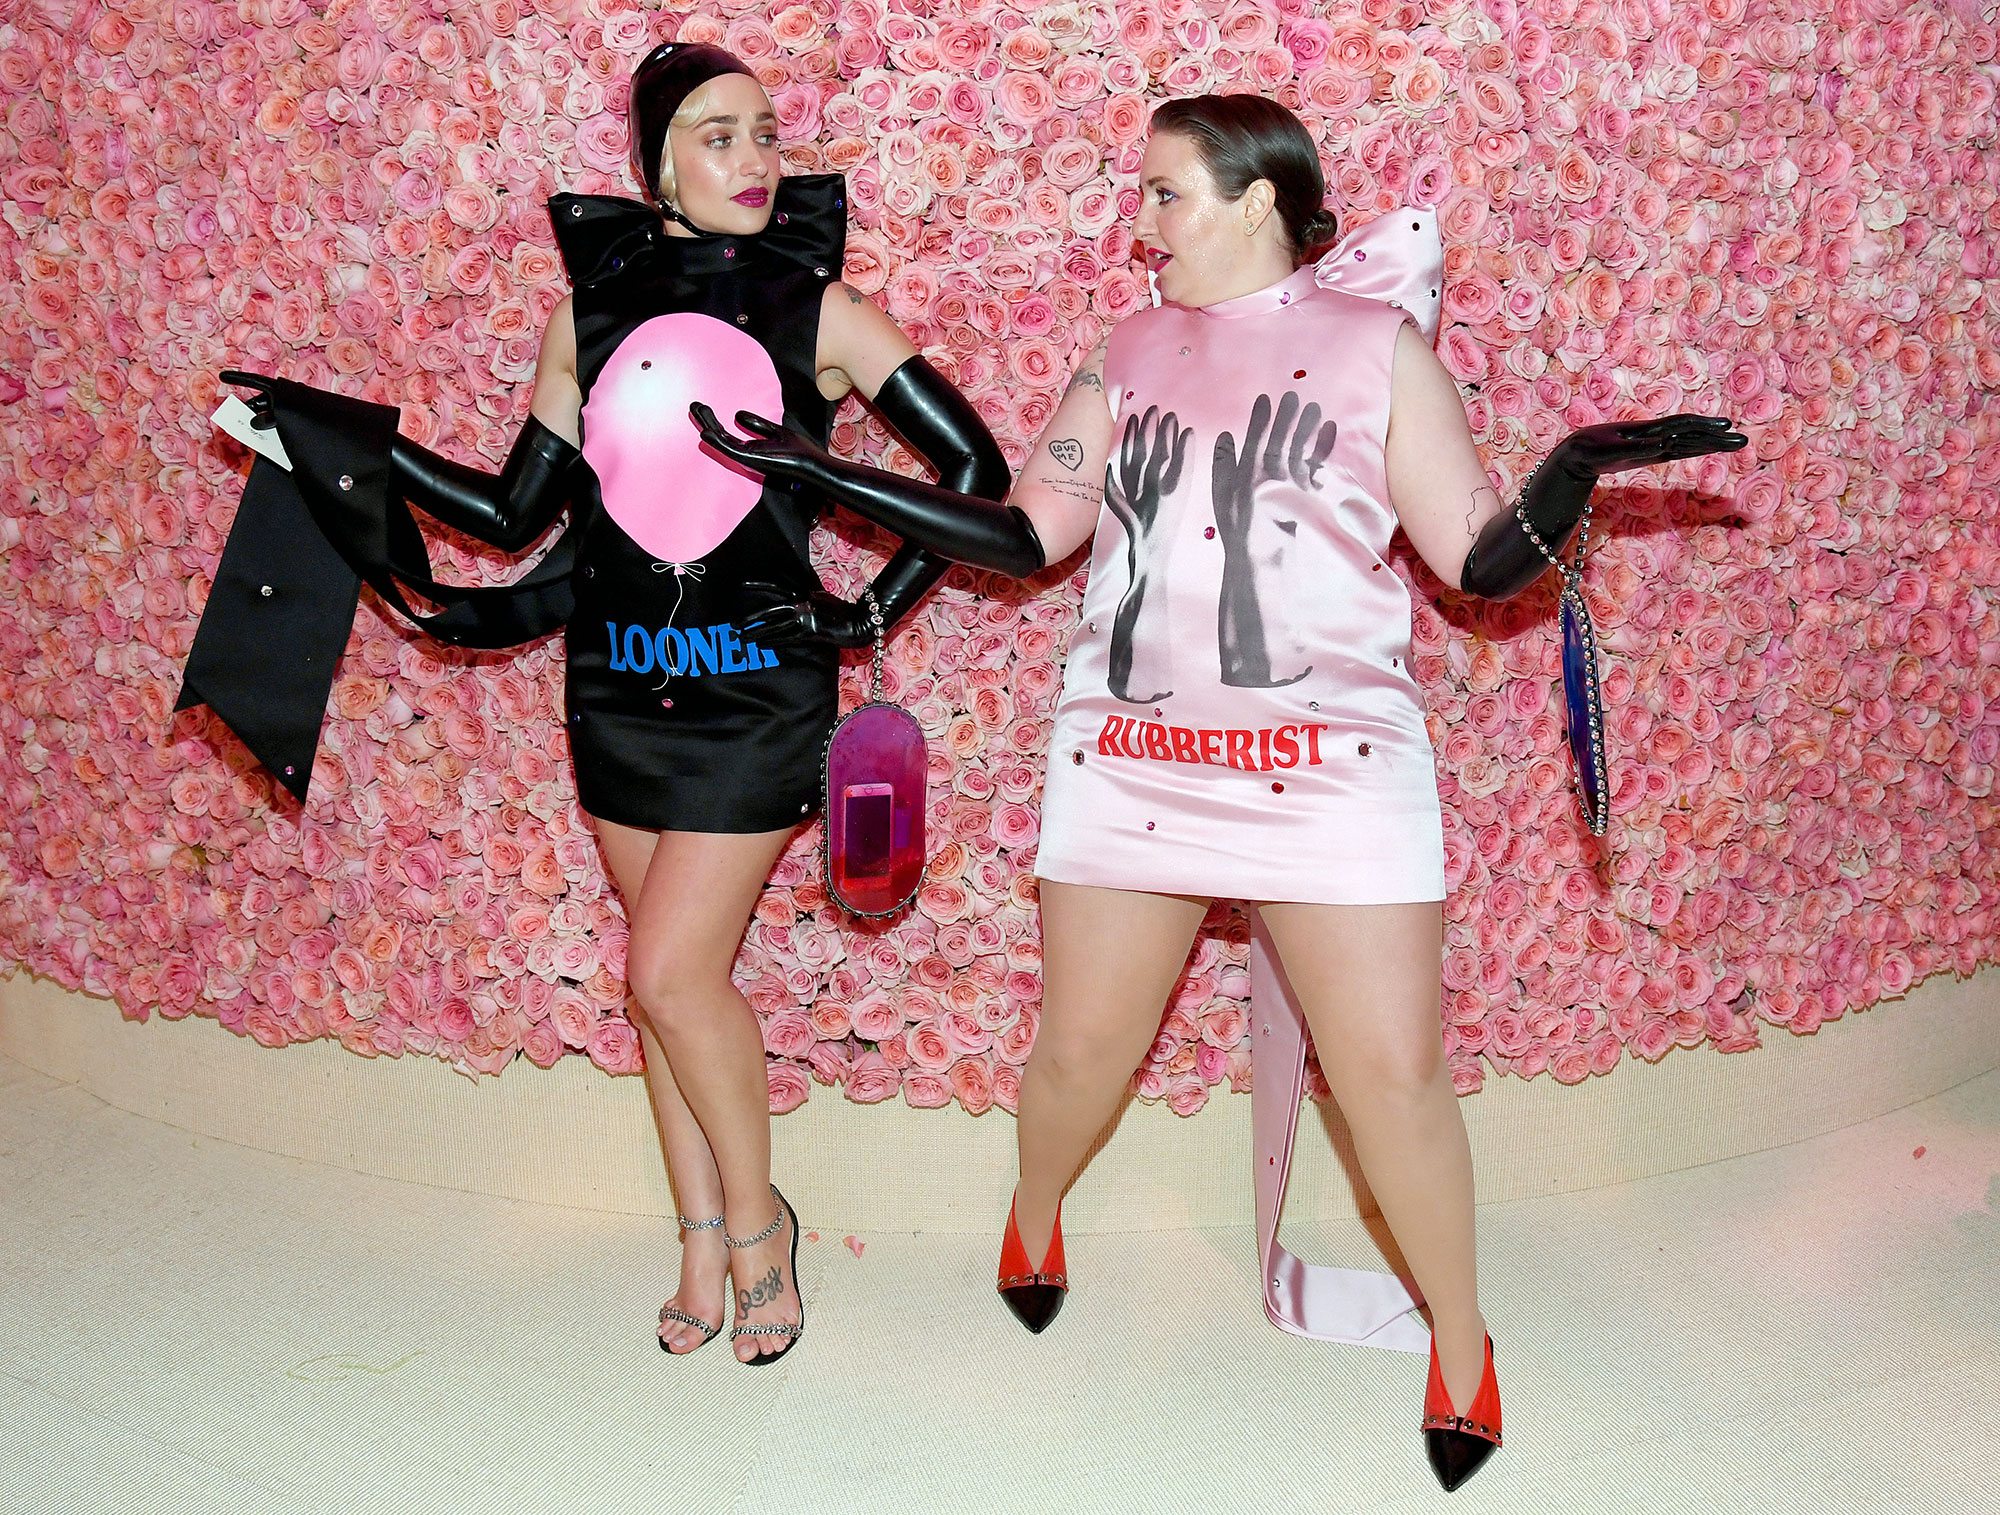 Met Gala 2019 What You Didnt See Jemima Kirke Lena Dunham - Jemima Kirke and Lena Dunham tried out different poses inside the event.